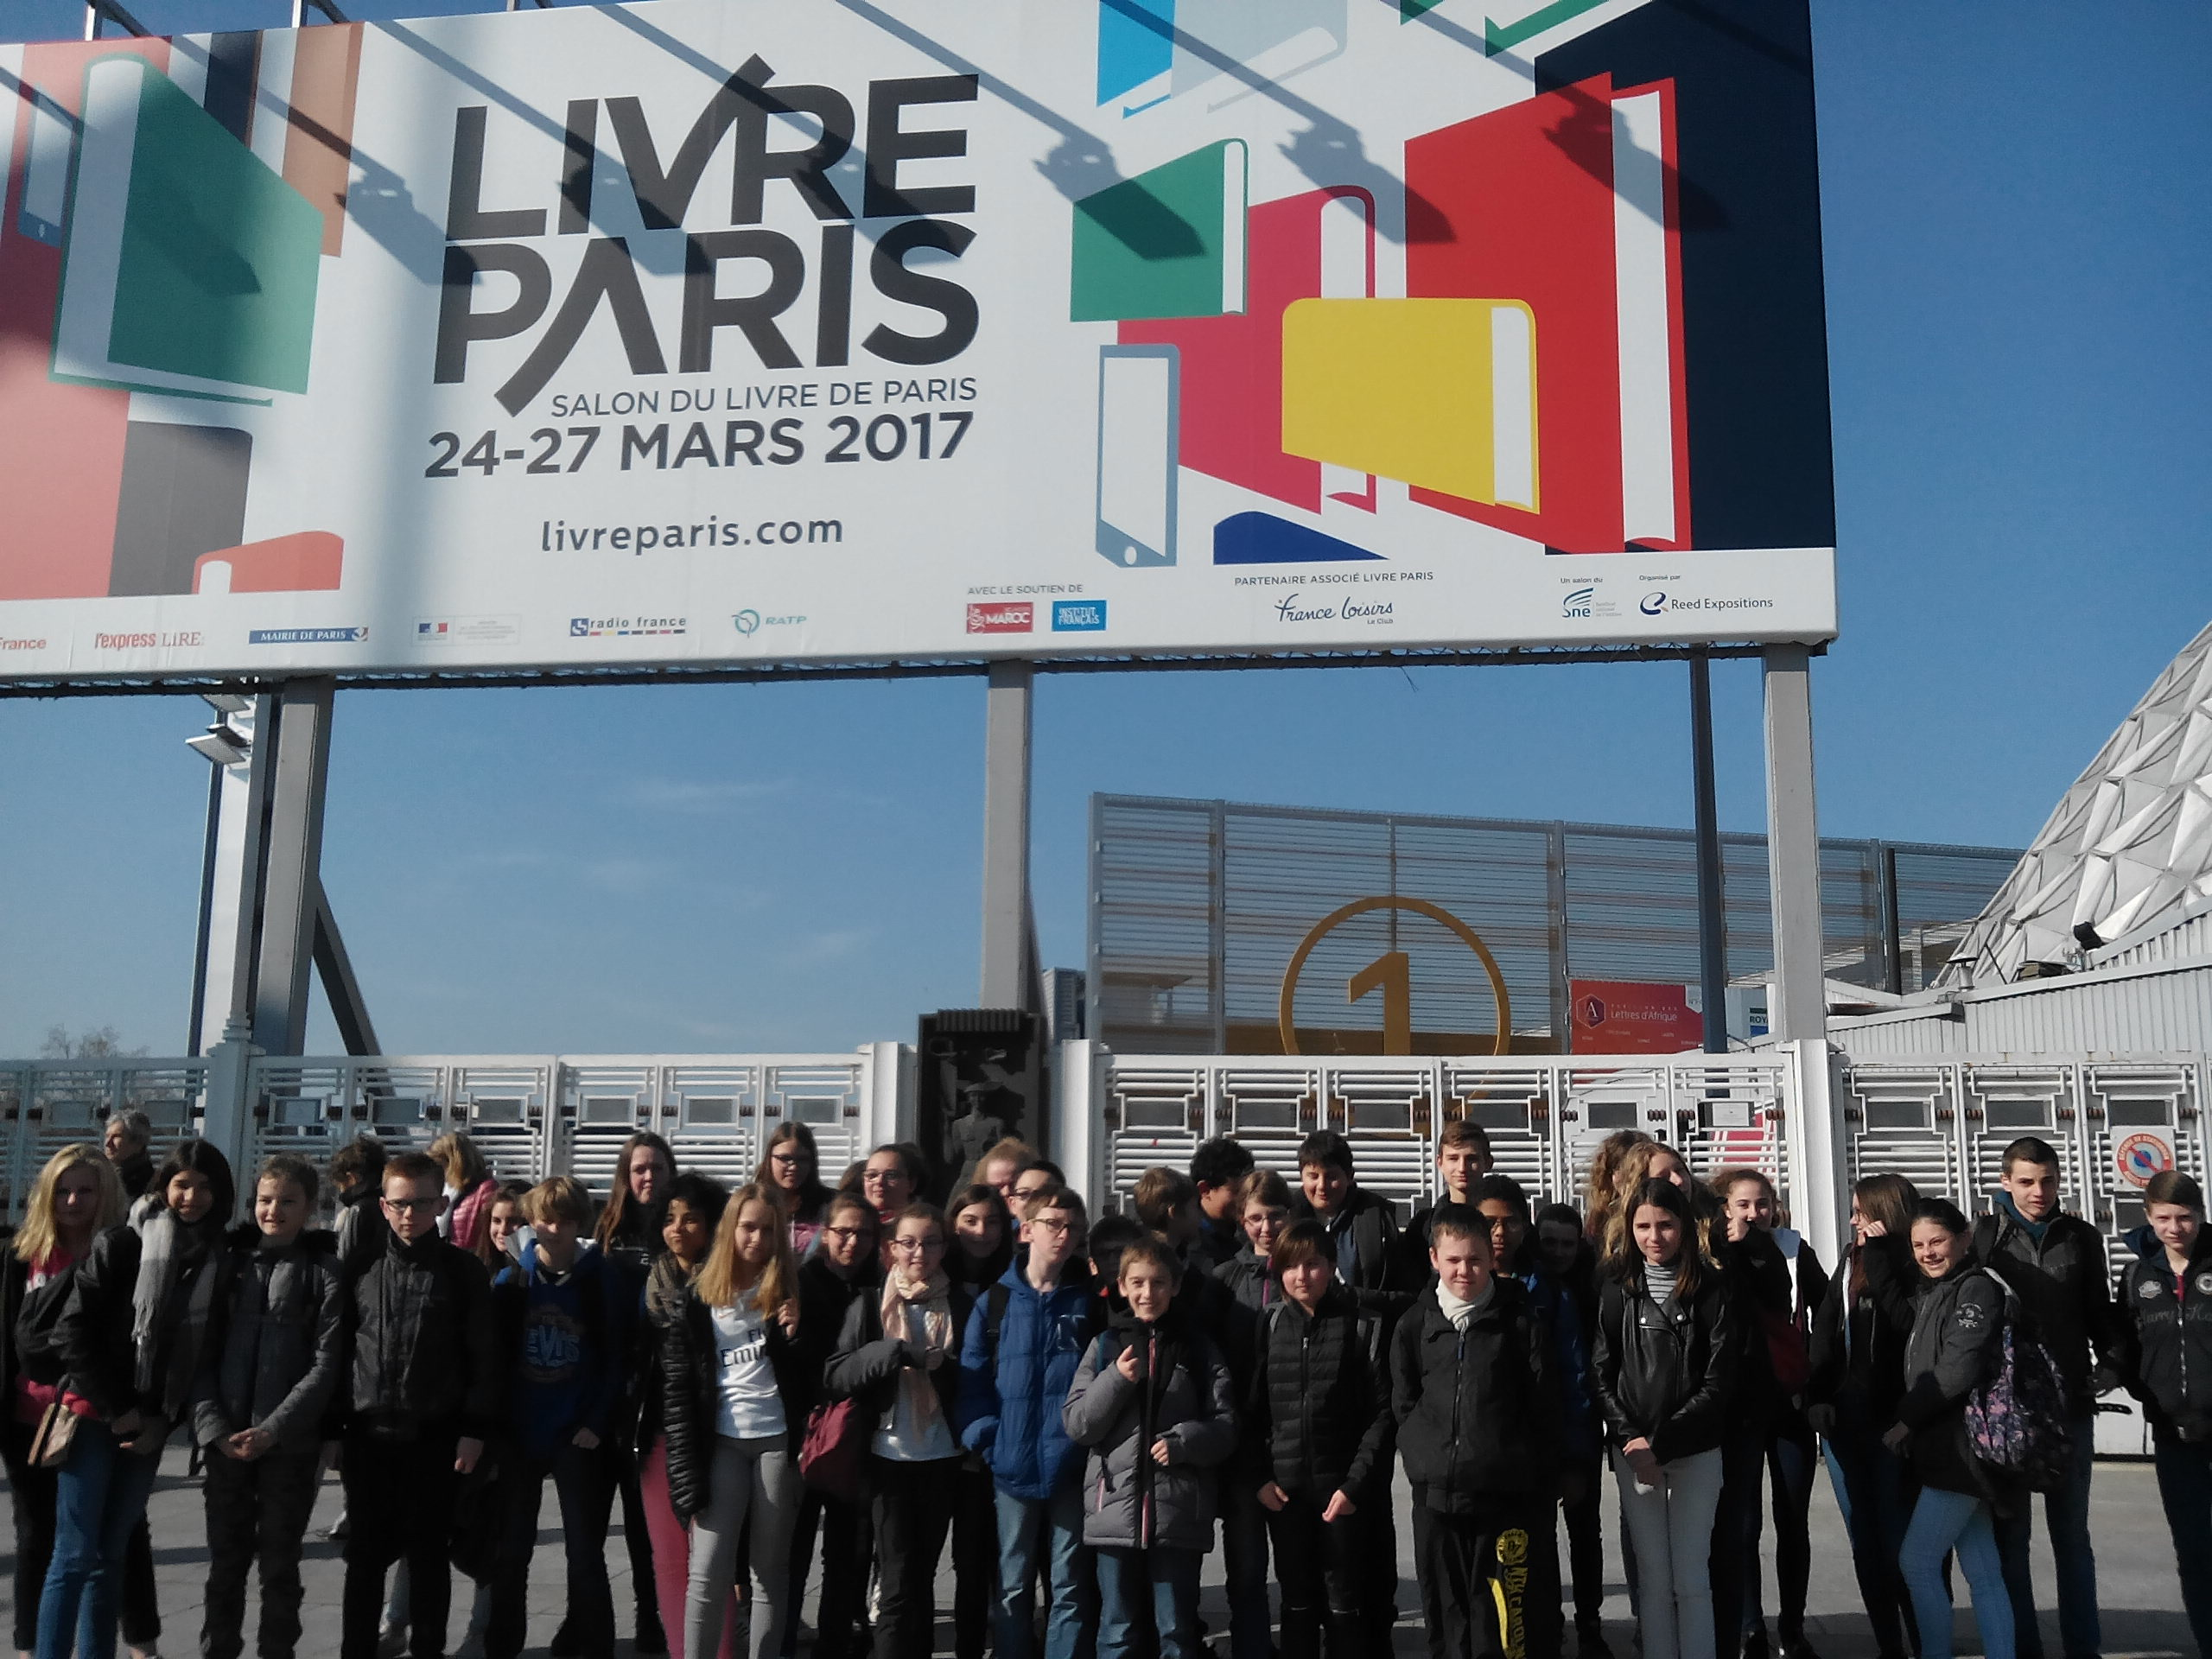 Site du coll ge louis philippe photos sorties salon du livre paris 2017 - Salon du livre 2017 paris ...